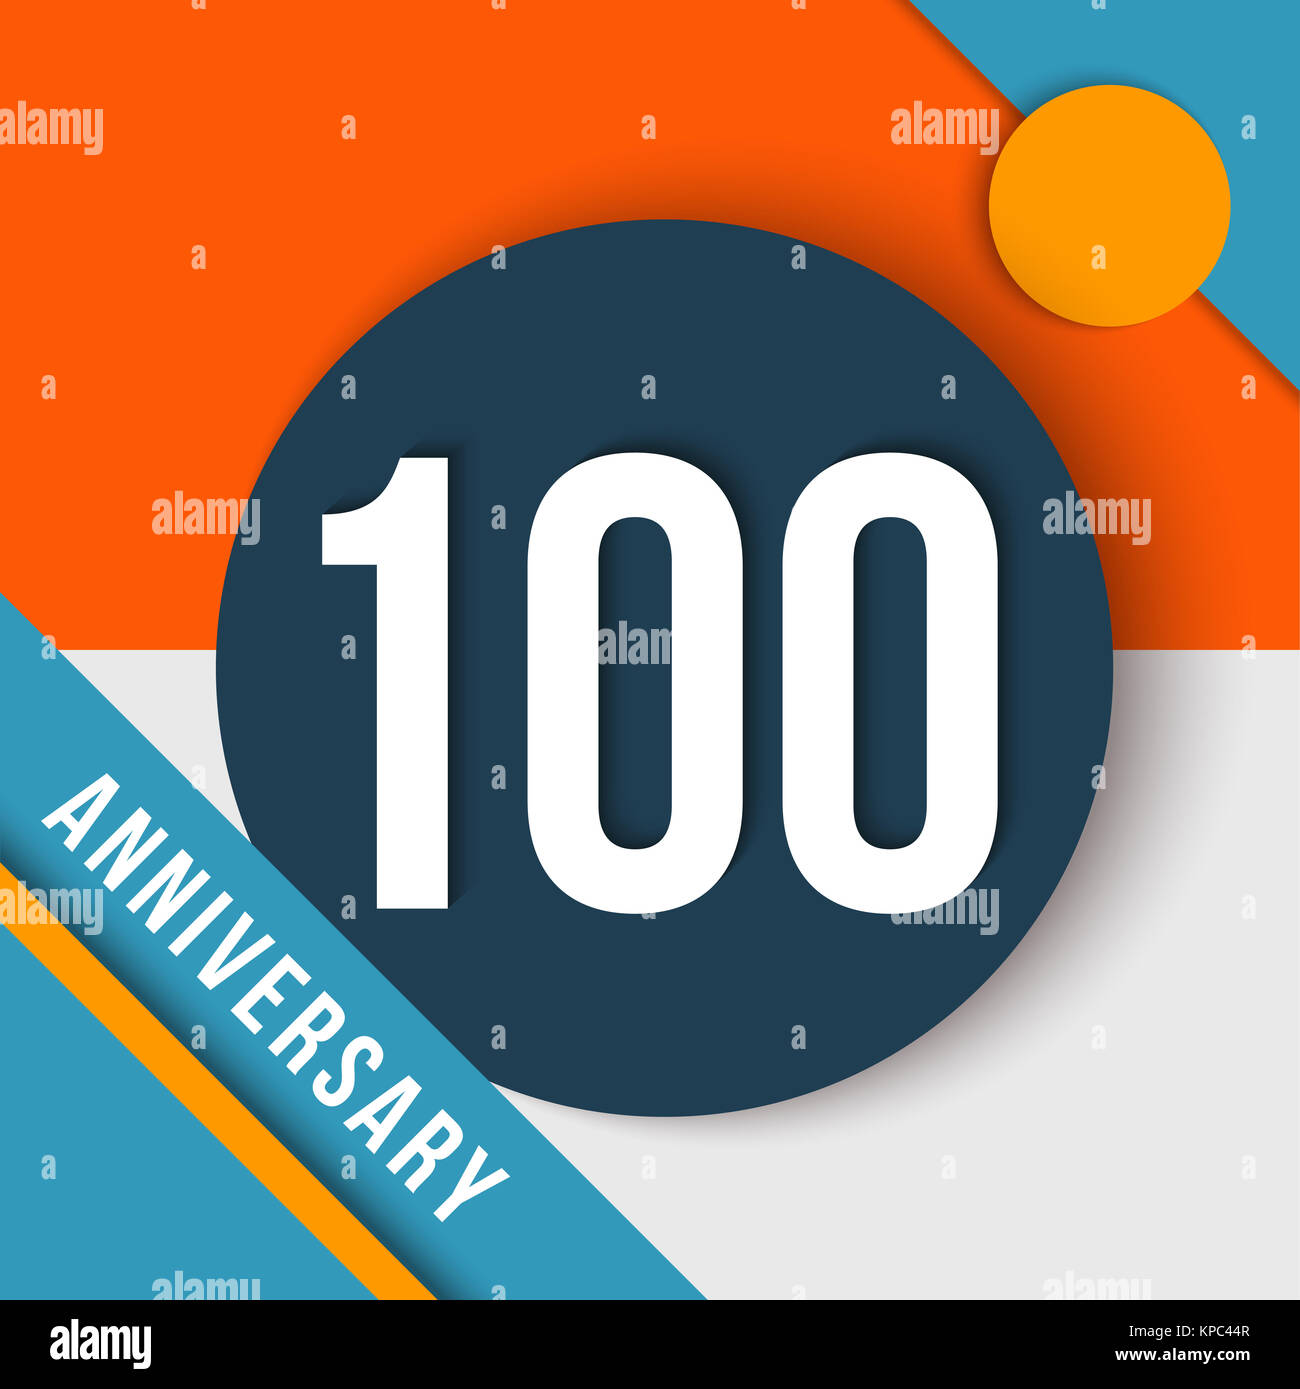 100 year anniversary material design concept - Stock Image